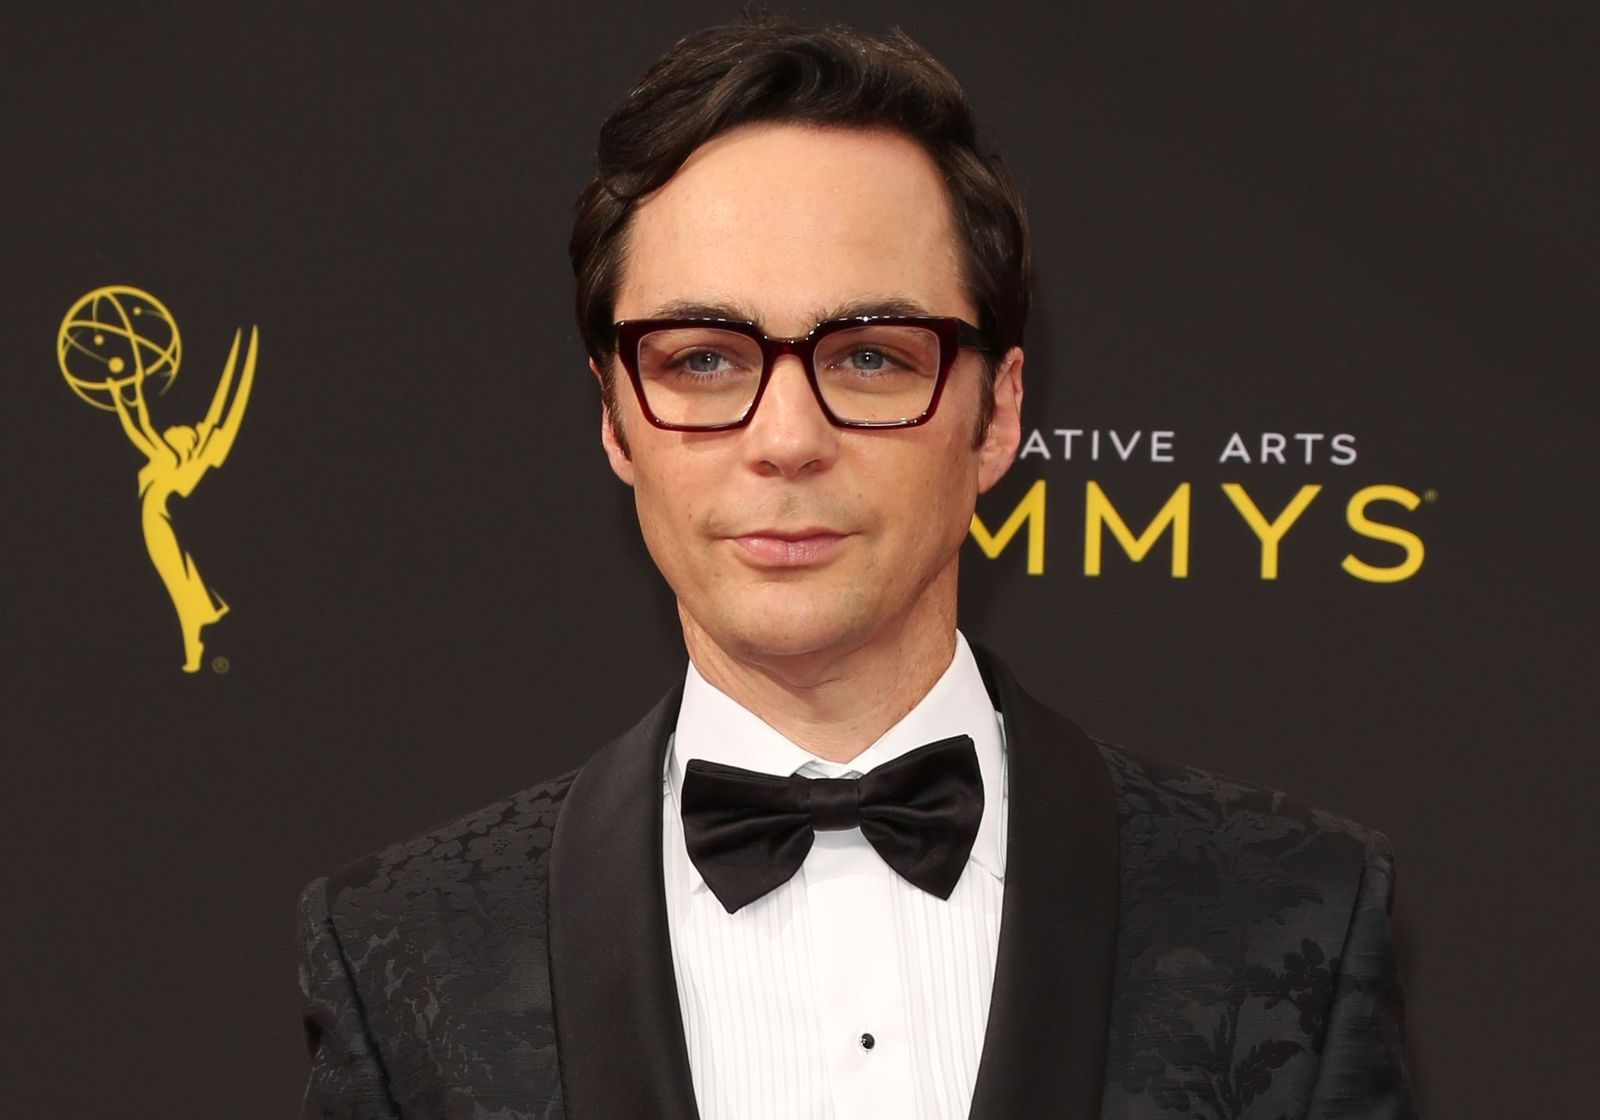 Jim Parsons at the Creative Arts Emmy Awards on September 15, 2019, in Los Angeles, California | Photo: Paul Archuleta/FilmMagic/Getty Images